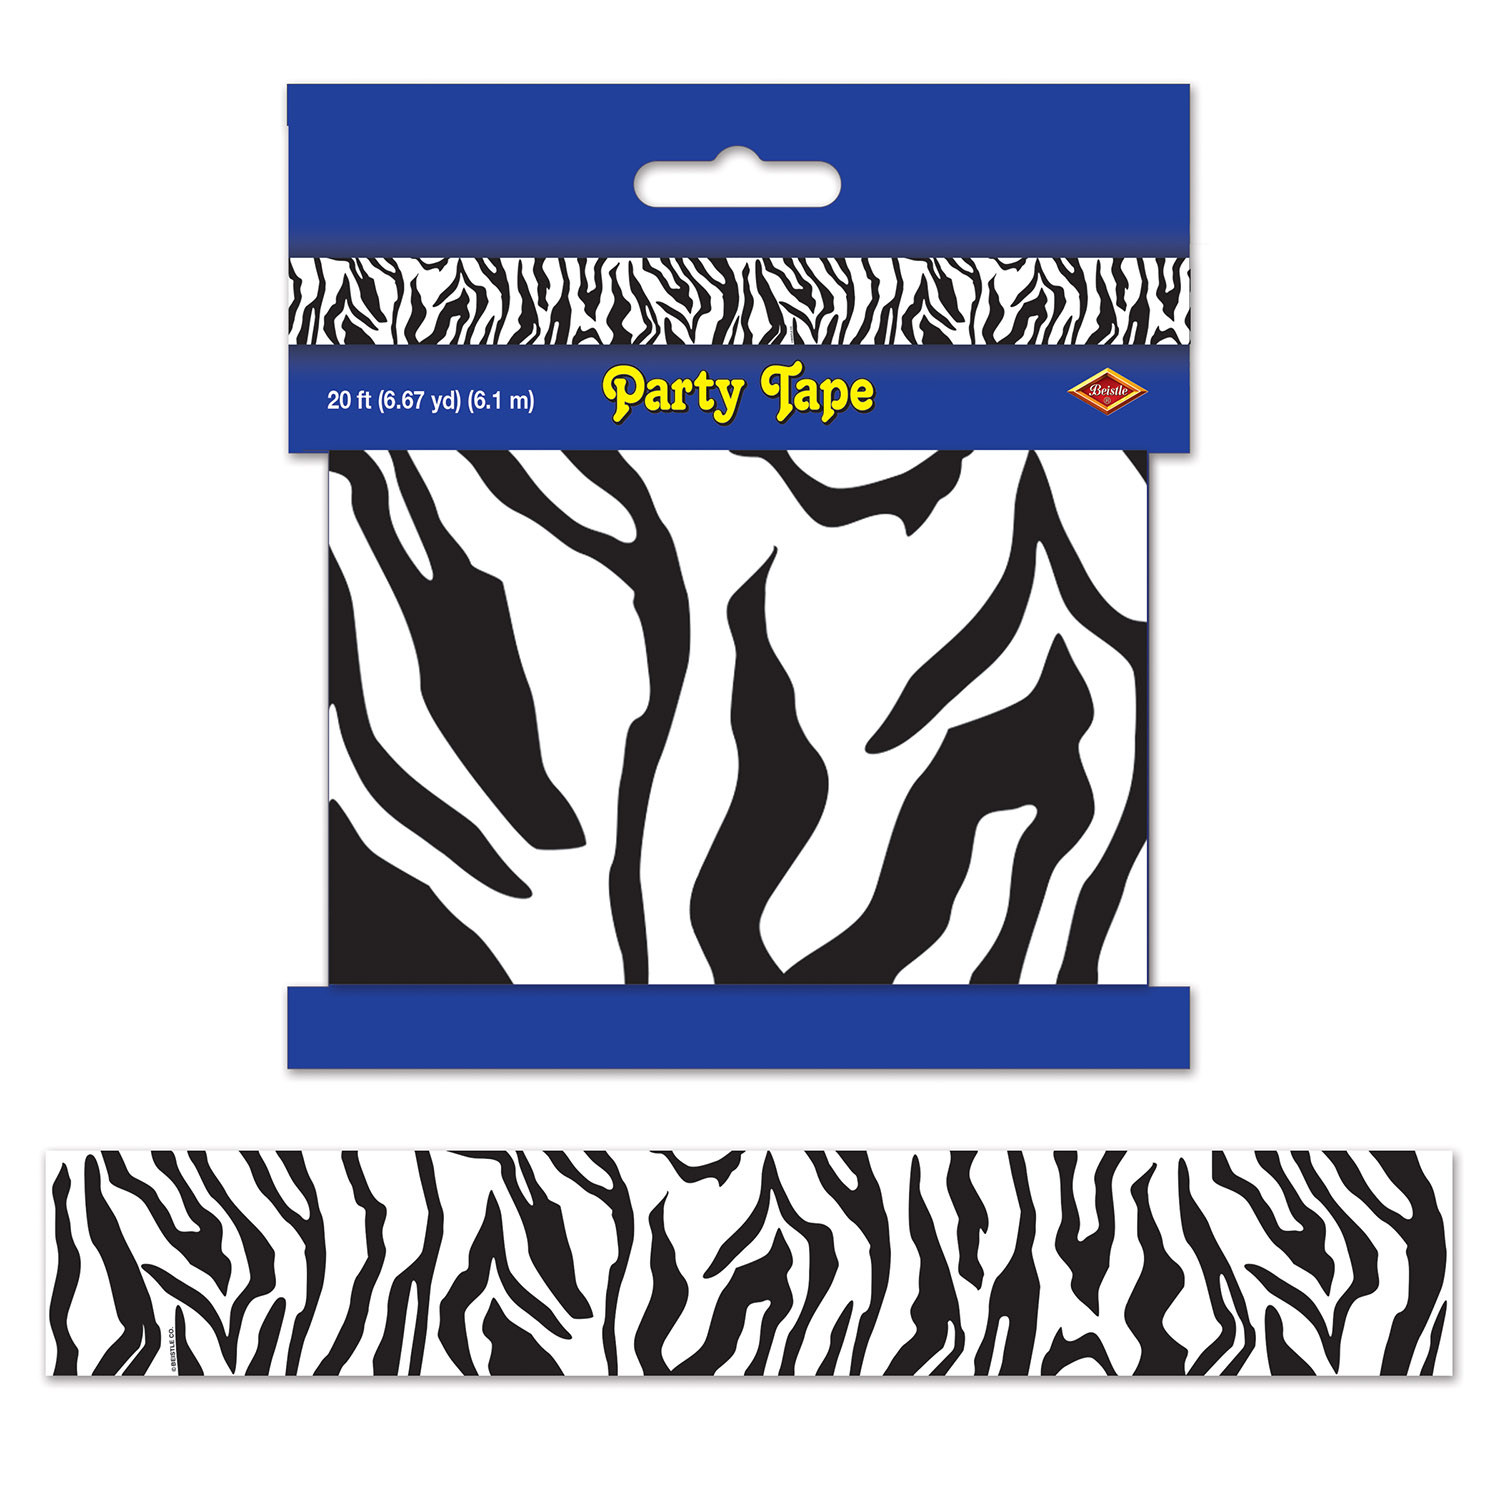 Zebra Print Party Tape (Pack of 12) Zebra Print Party Tape, decoration, luau, safari, new years eve, wholesale, inexpensive, bulk